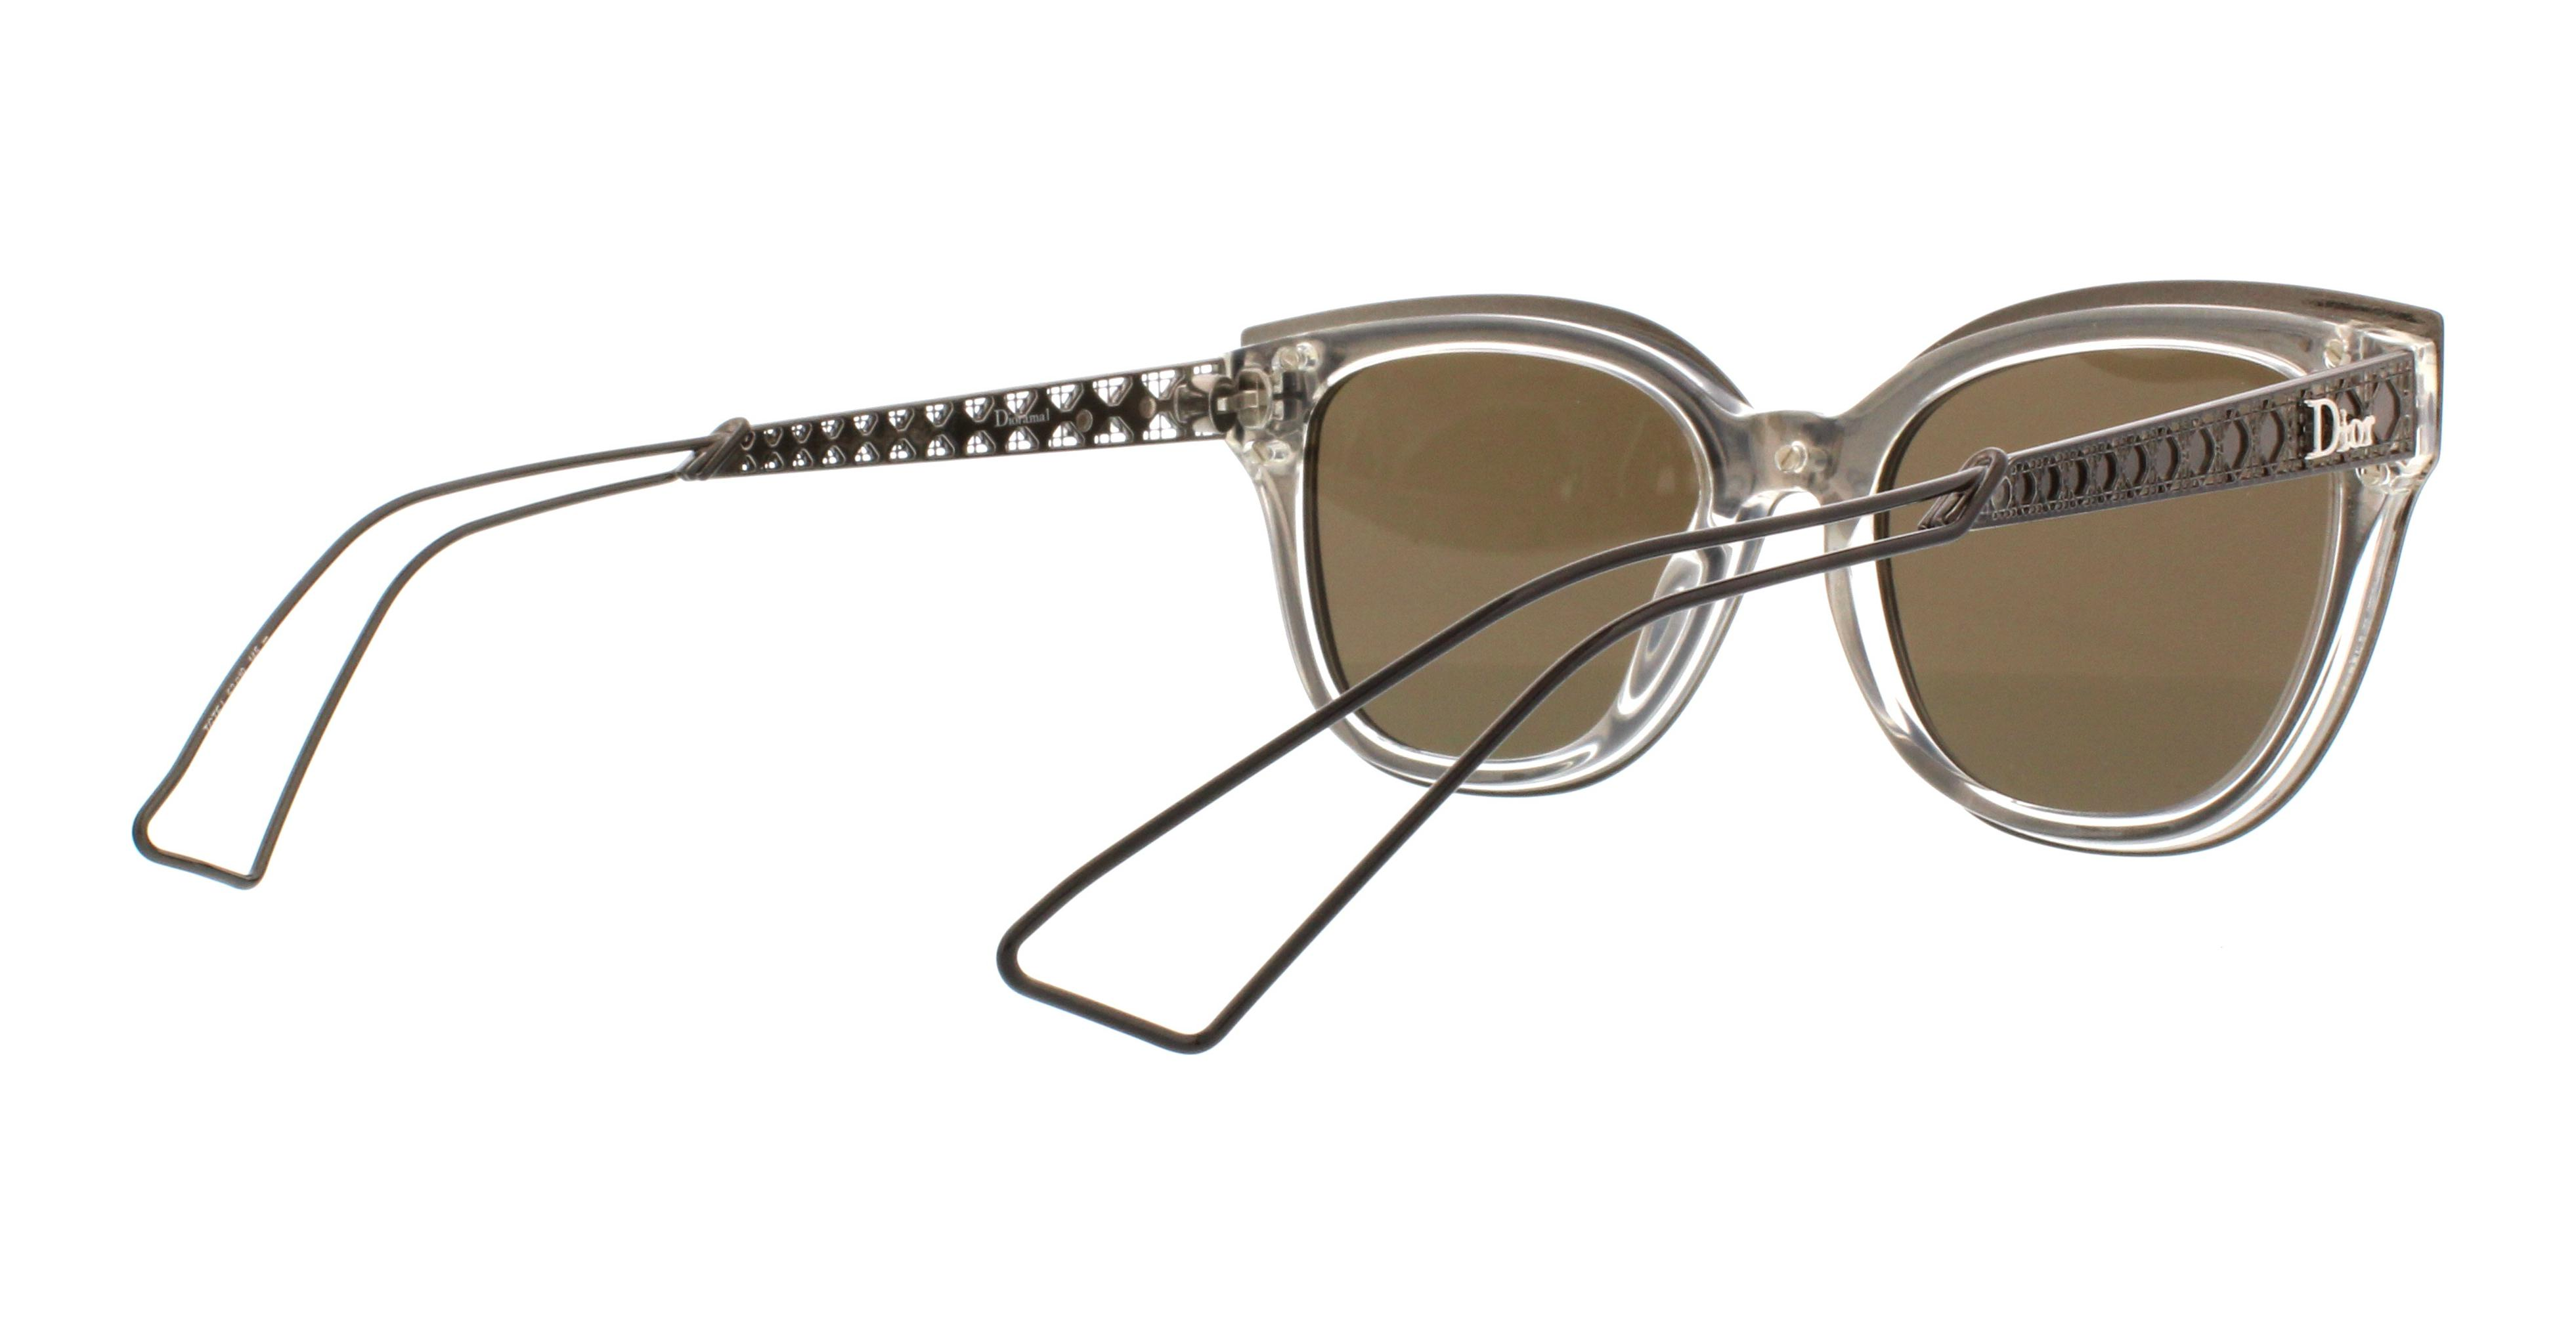 548a3695187 Ama Glasses Related Keywords   Suggestions - Ama Glasses Long Tail ...